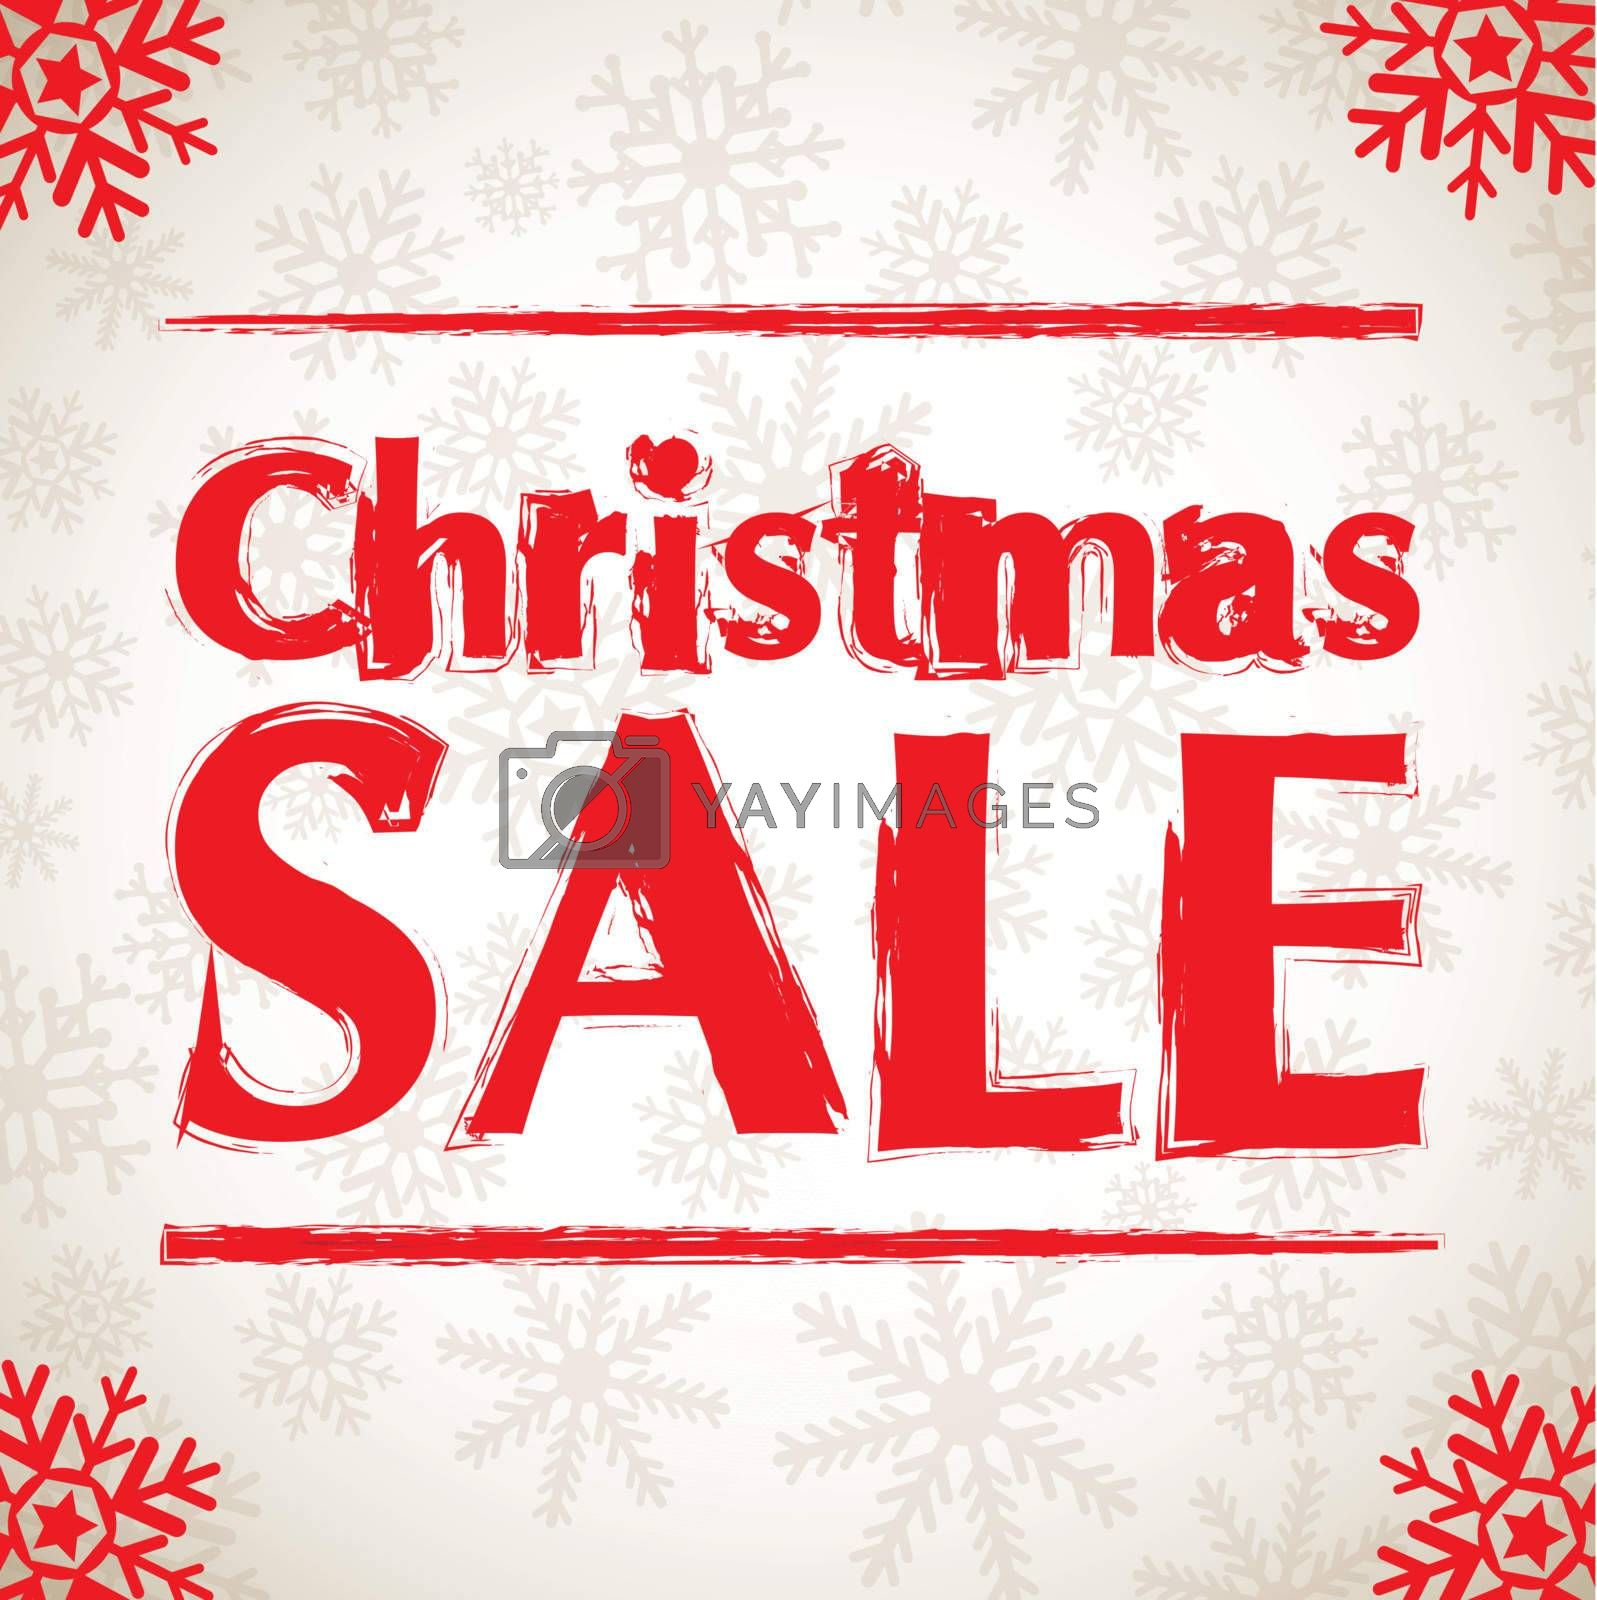 Christmas sales with snow over white background